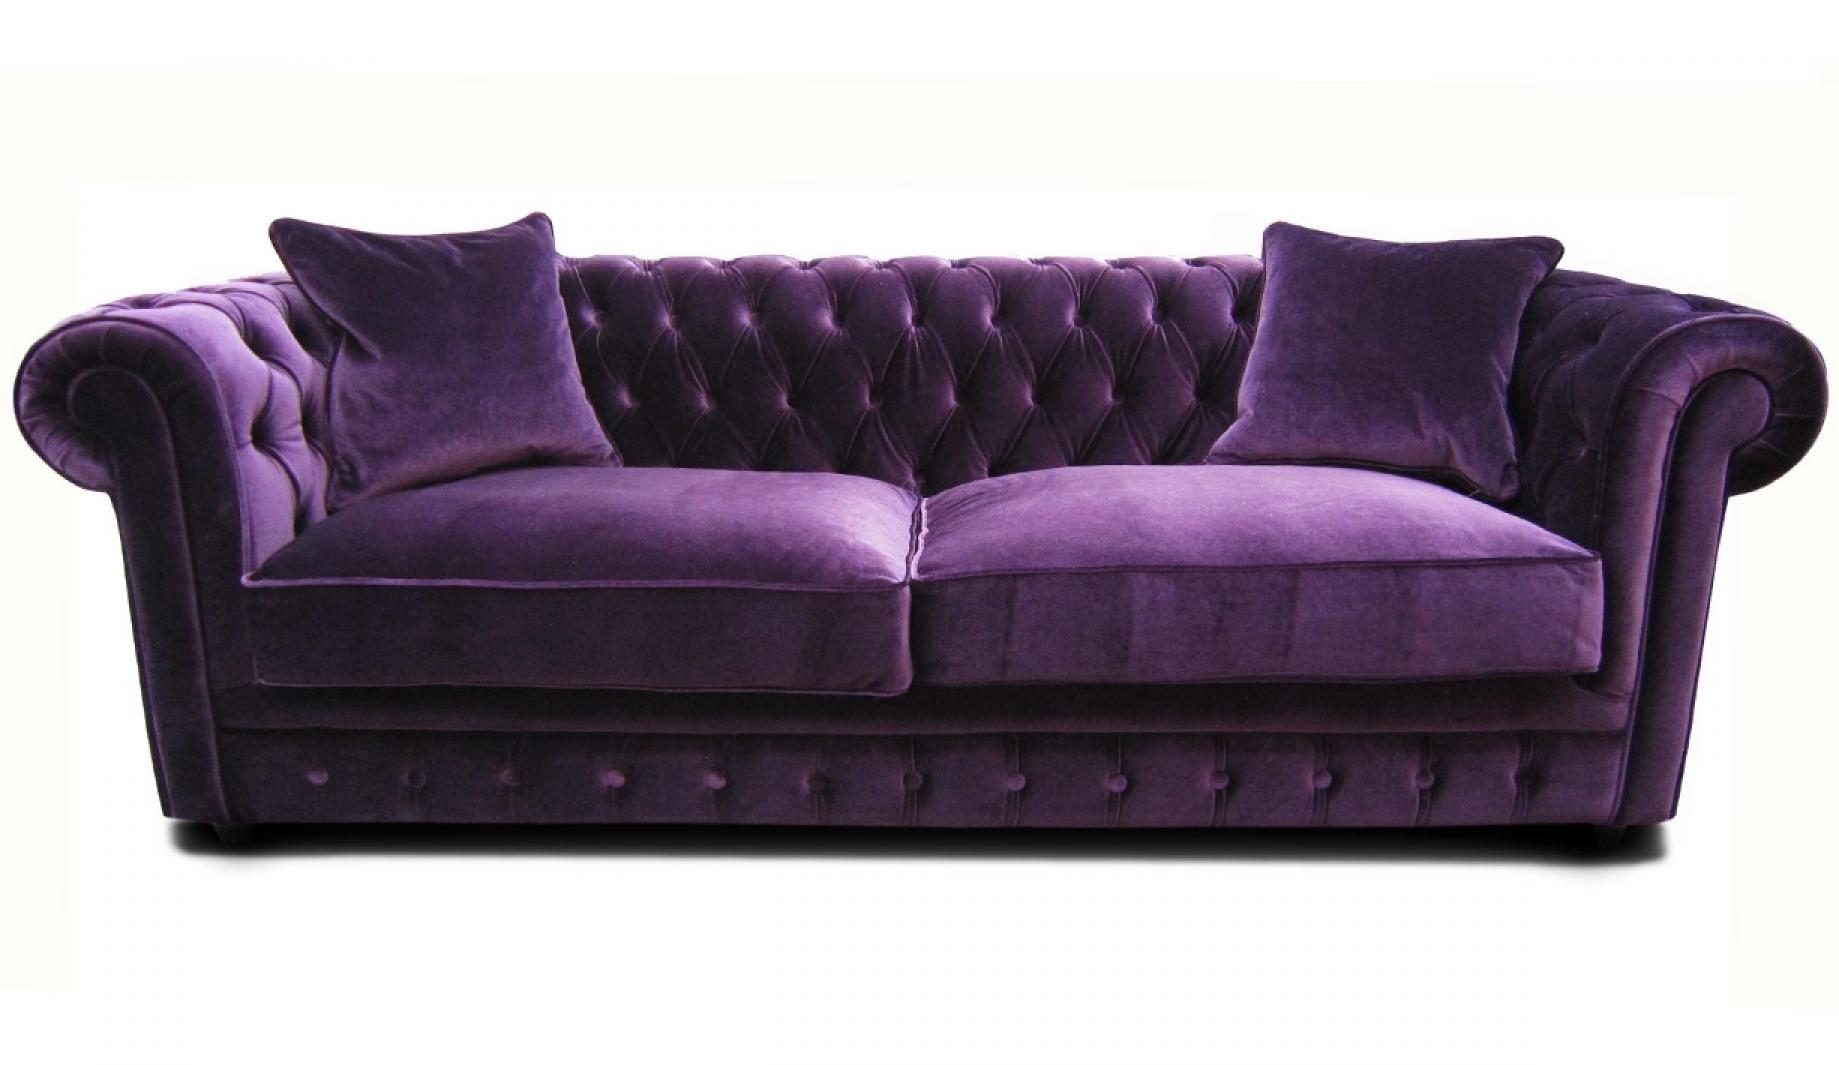 Canape chesterfield prix for Chesterfield canape